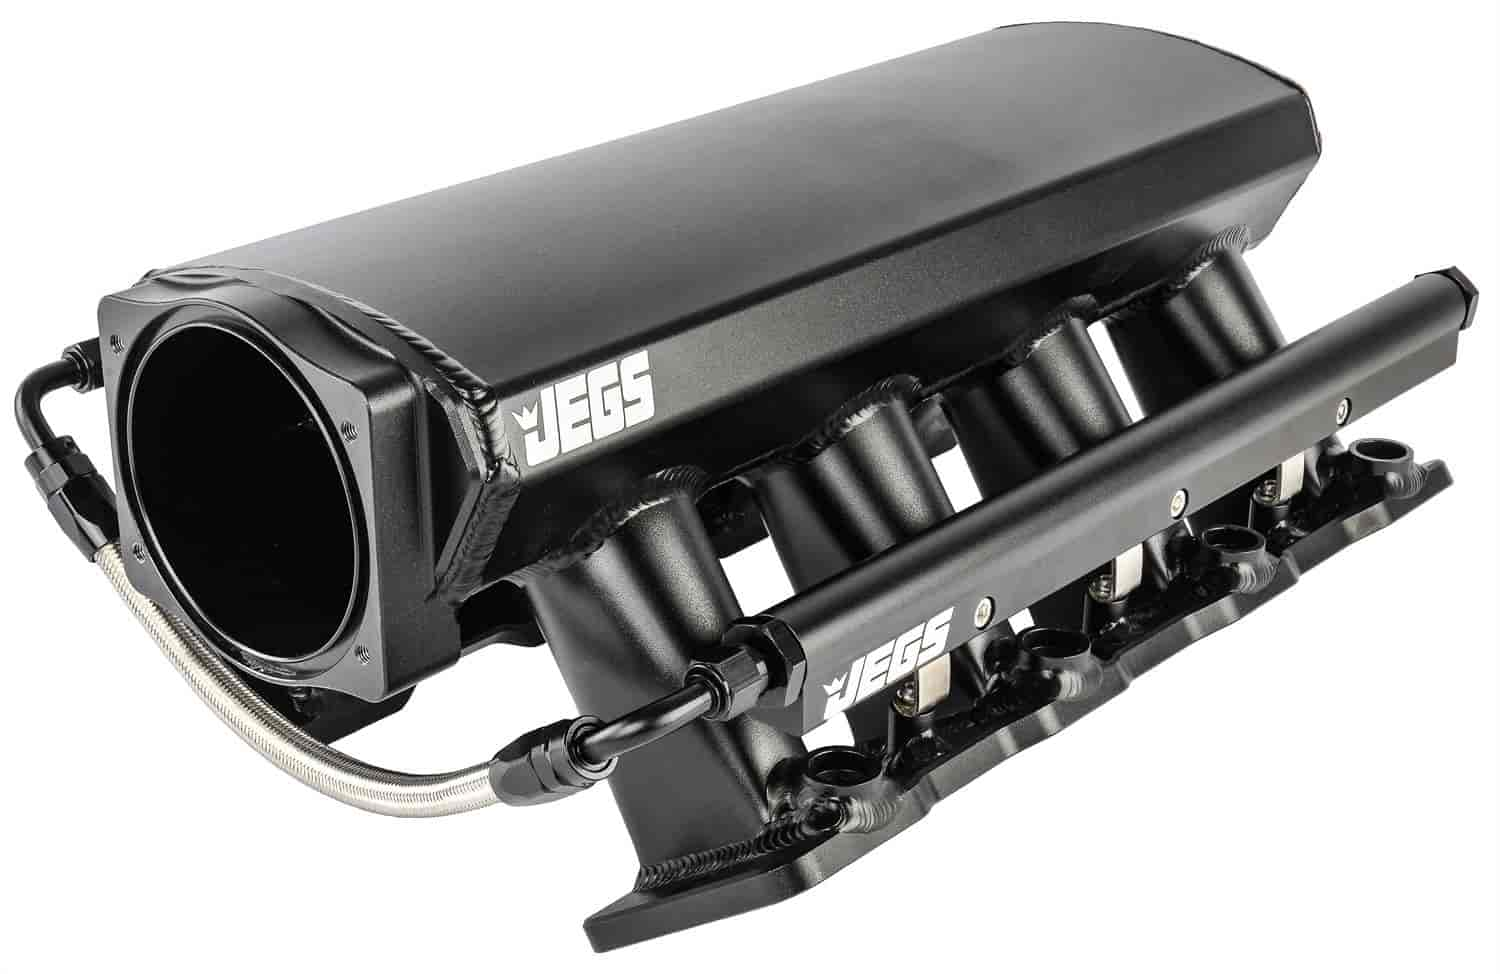 JEGS Fabricated Intake Manifold for GM LS1, LS2, LS6 [Black Aluminum]